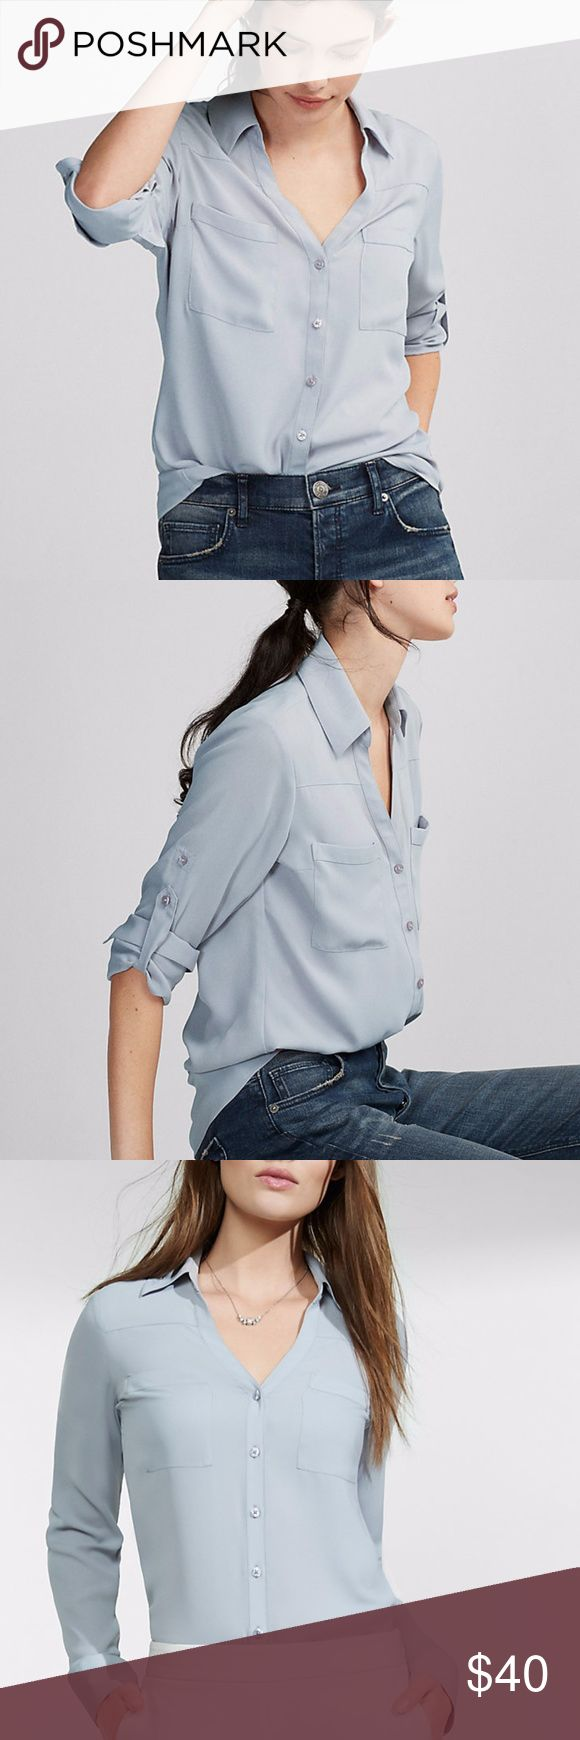 ✨NEW✨ Express Slim Fit Portofino Button Up Shirt 🍃A merger of classic shirt confidence and effortlessly sexy style in luxe, semi-sheer crepe, this slim cut of the best-selling Portofino Shirt is tailored for a modern fit. Tucks perfectly into a pencil skirt or jean. Refinery29 Editor Pick. 🍃Brand New With Tags! 🍃The color is not a light blue, it's closer to gray with a little bit of lavender. ⭐️Reasonable offers will be considered 🚫No lowball offers please! 🙅No trades 💰Bundle and save…